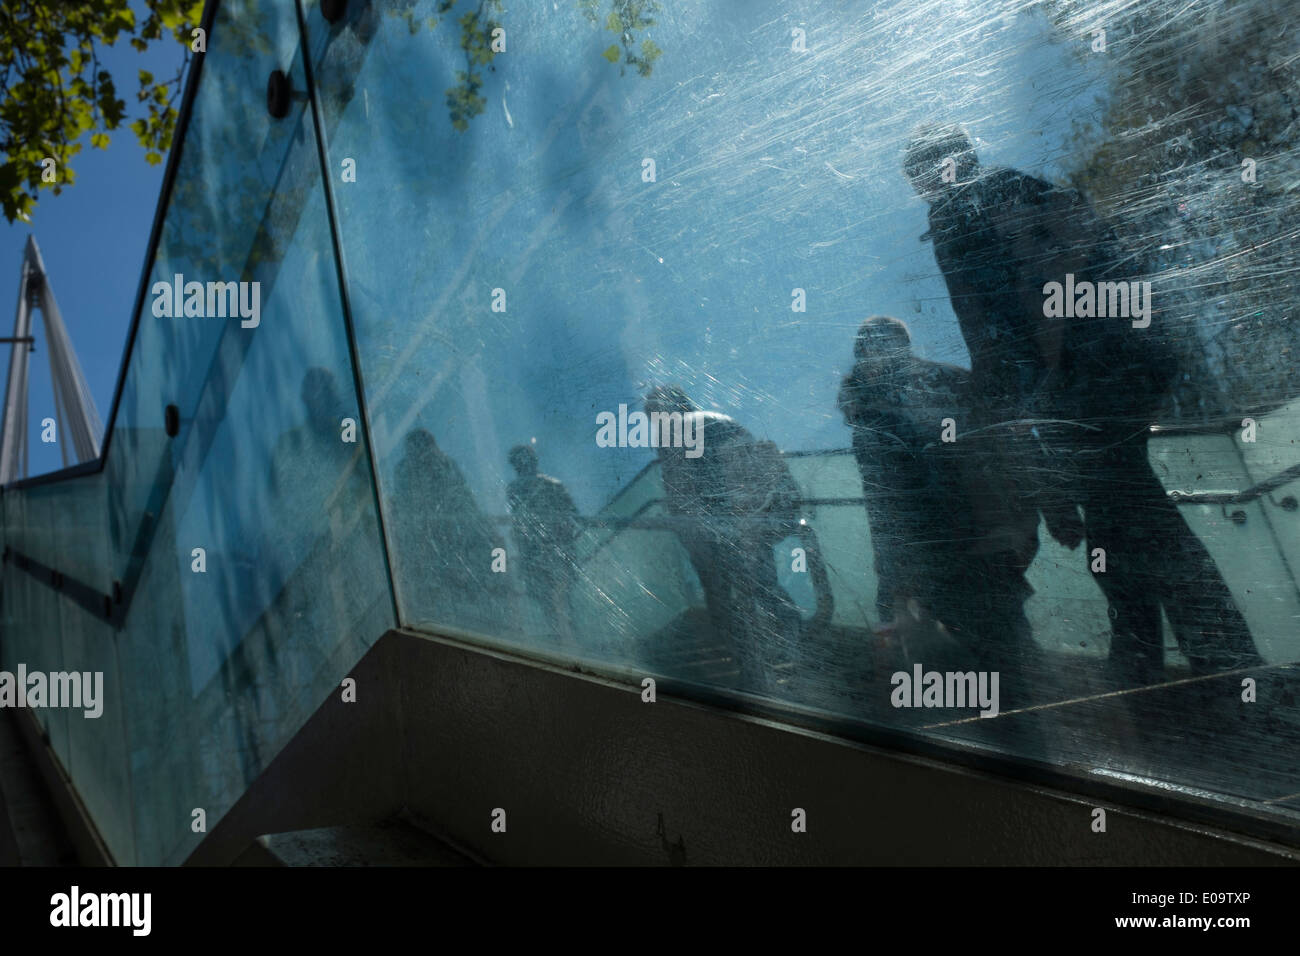 Commuters seen through the scratched glass of the stairway leading to the bridge across the River Thames. London, England - Stock Image